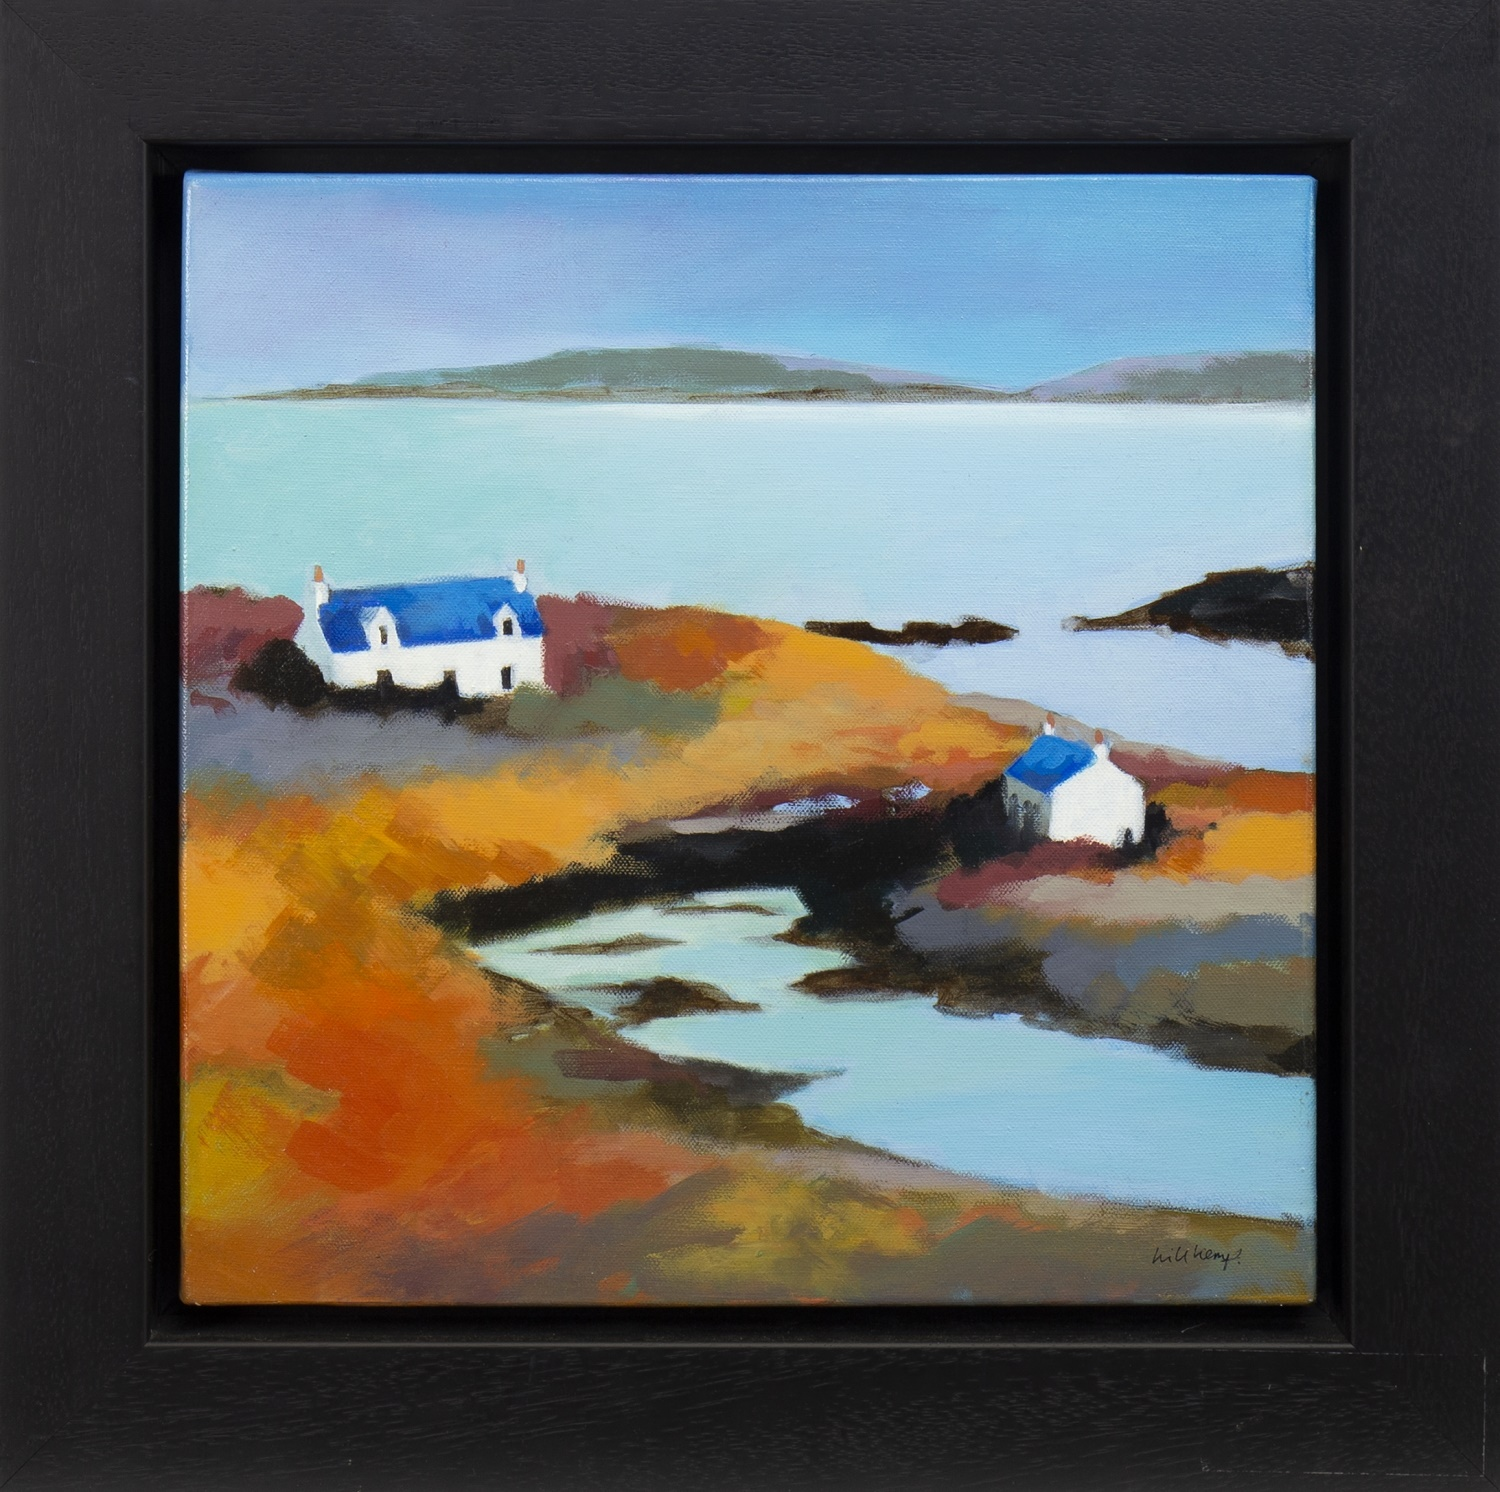 Lot 26 - WEST COAST COTTAGES, AN OIL BY WILL KEMP